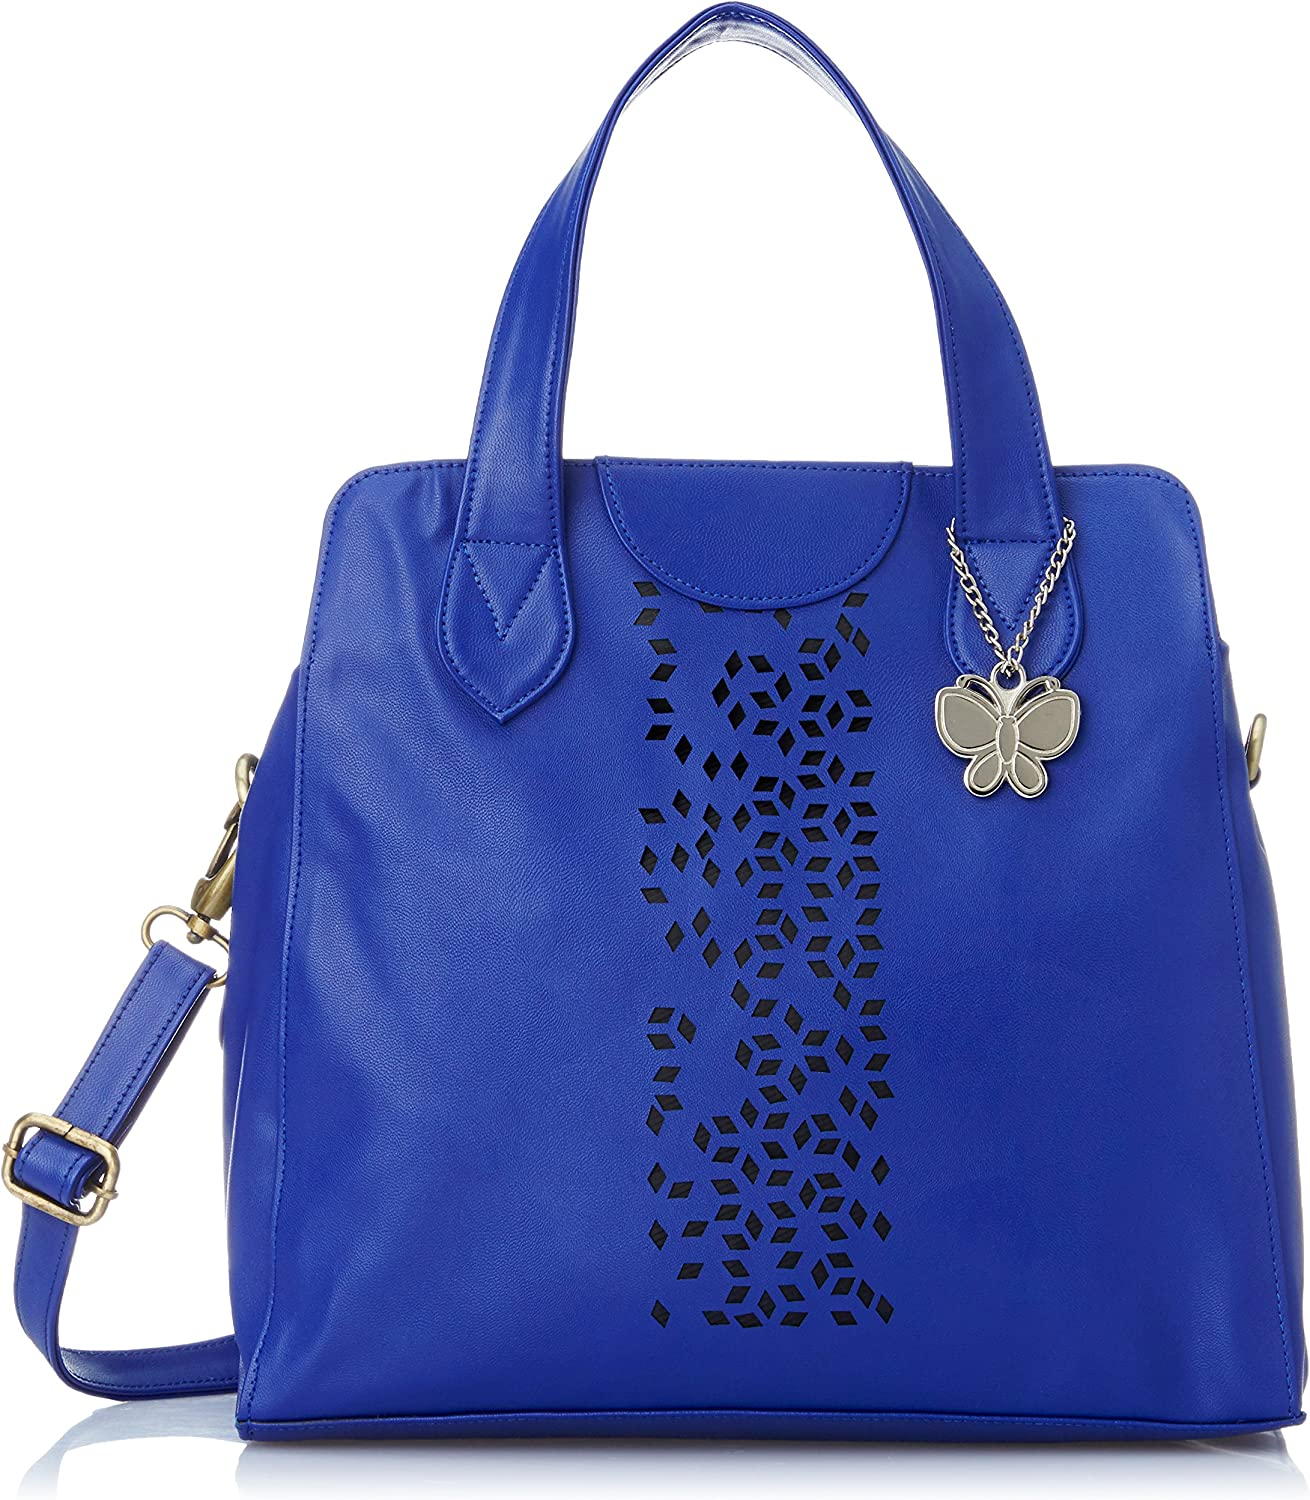 Butterflies Women's Handbag (Dark bluee) (BNS 0455 DBL)